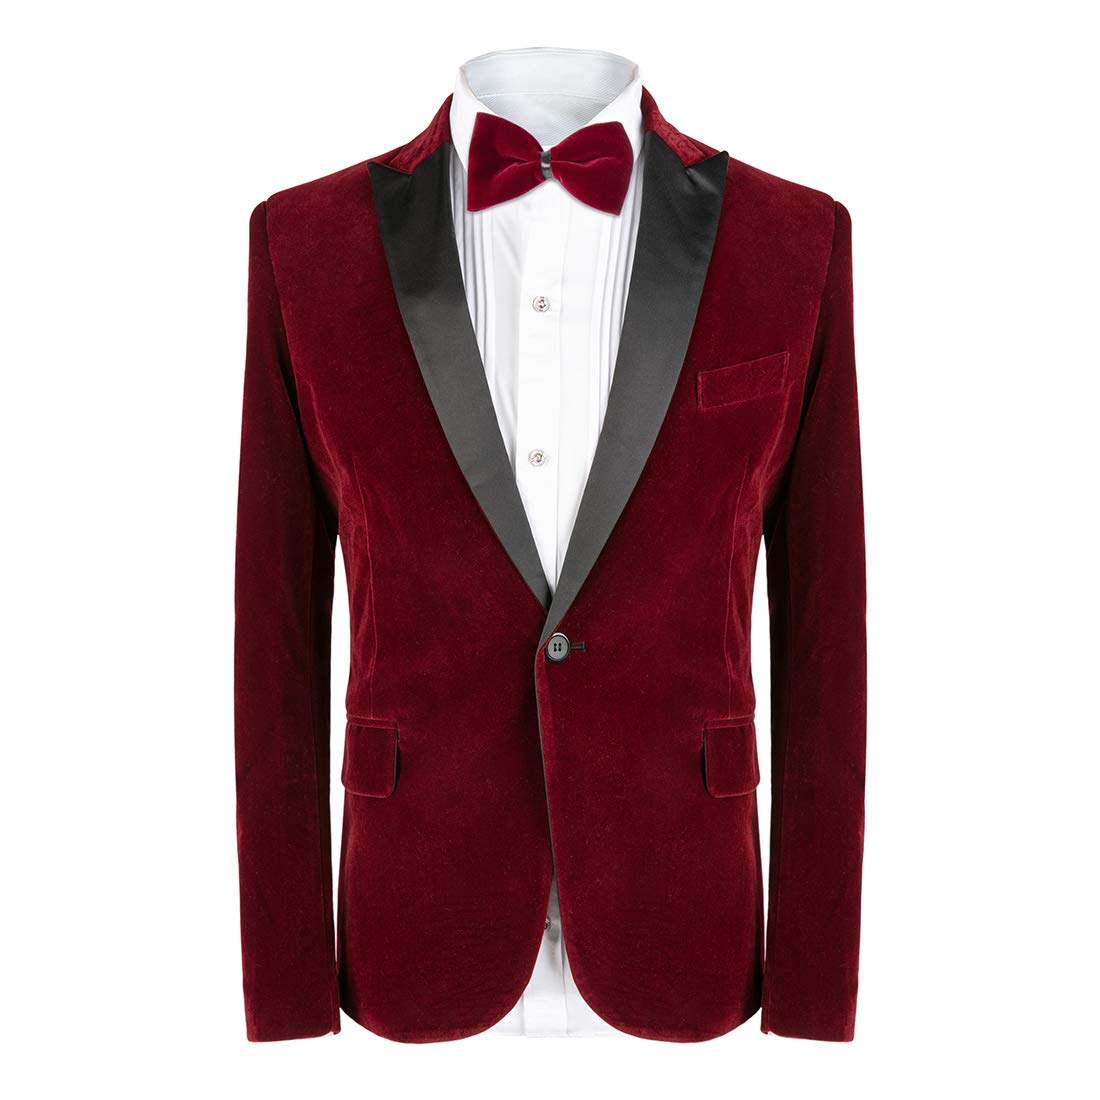 MAGE MALE Men's 2-Piece Suit Velvet Blazer Party Tuxedo Slim Fit One Button Stylish Dinner Jacket & Pants & Bow Tie by MAGE MALE